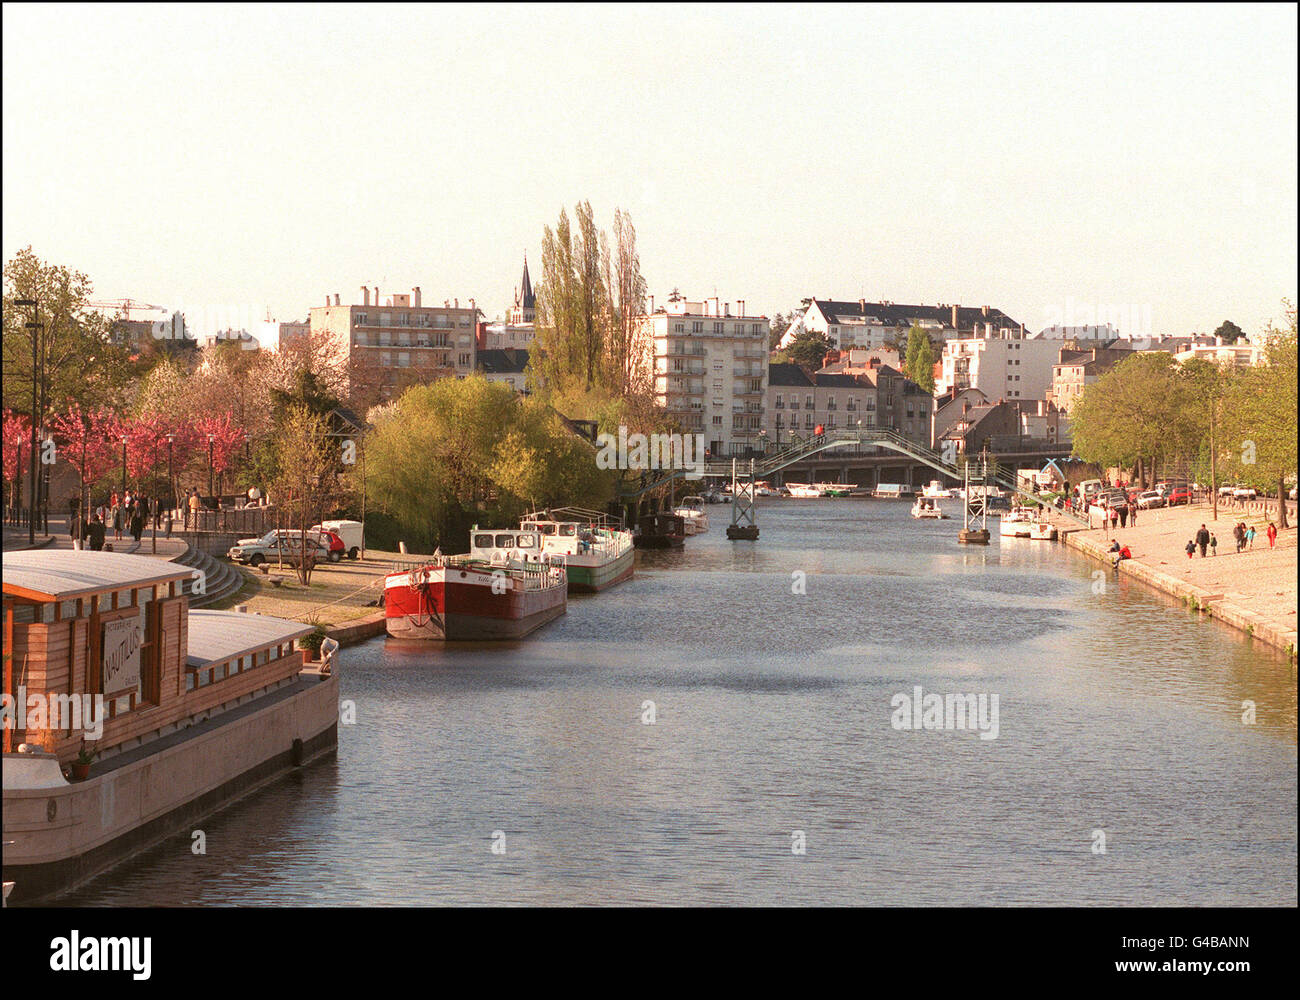 1998 World Cup AFP PHOTO View of the Canal de l'Erdre iin Nantes, taken in April. Nantes is one of the ten cities - Stock Image